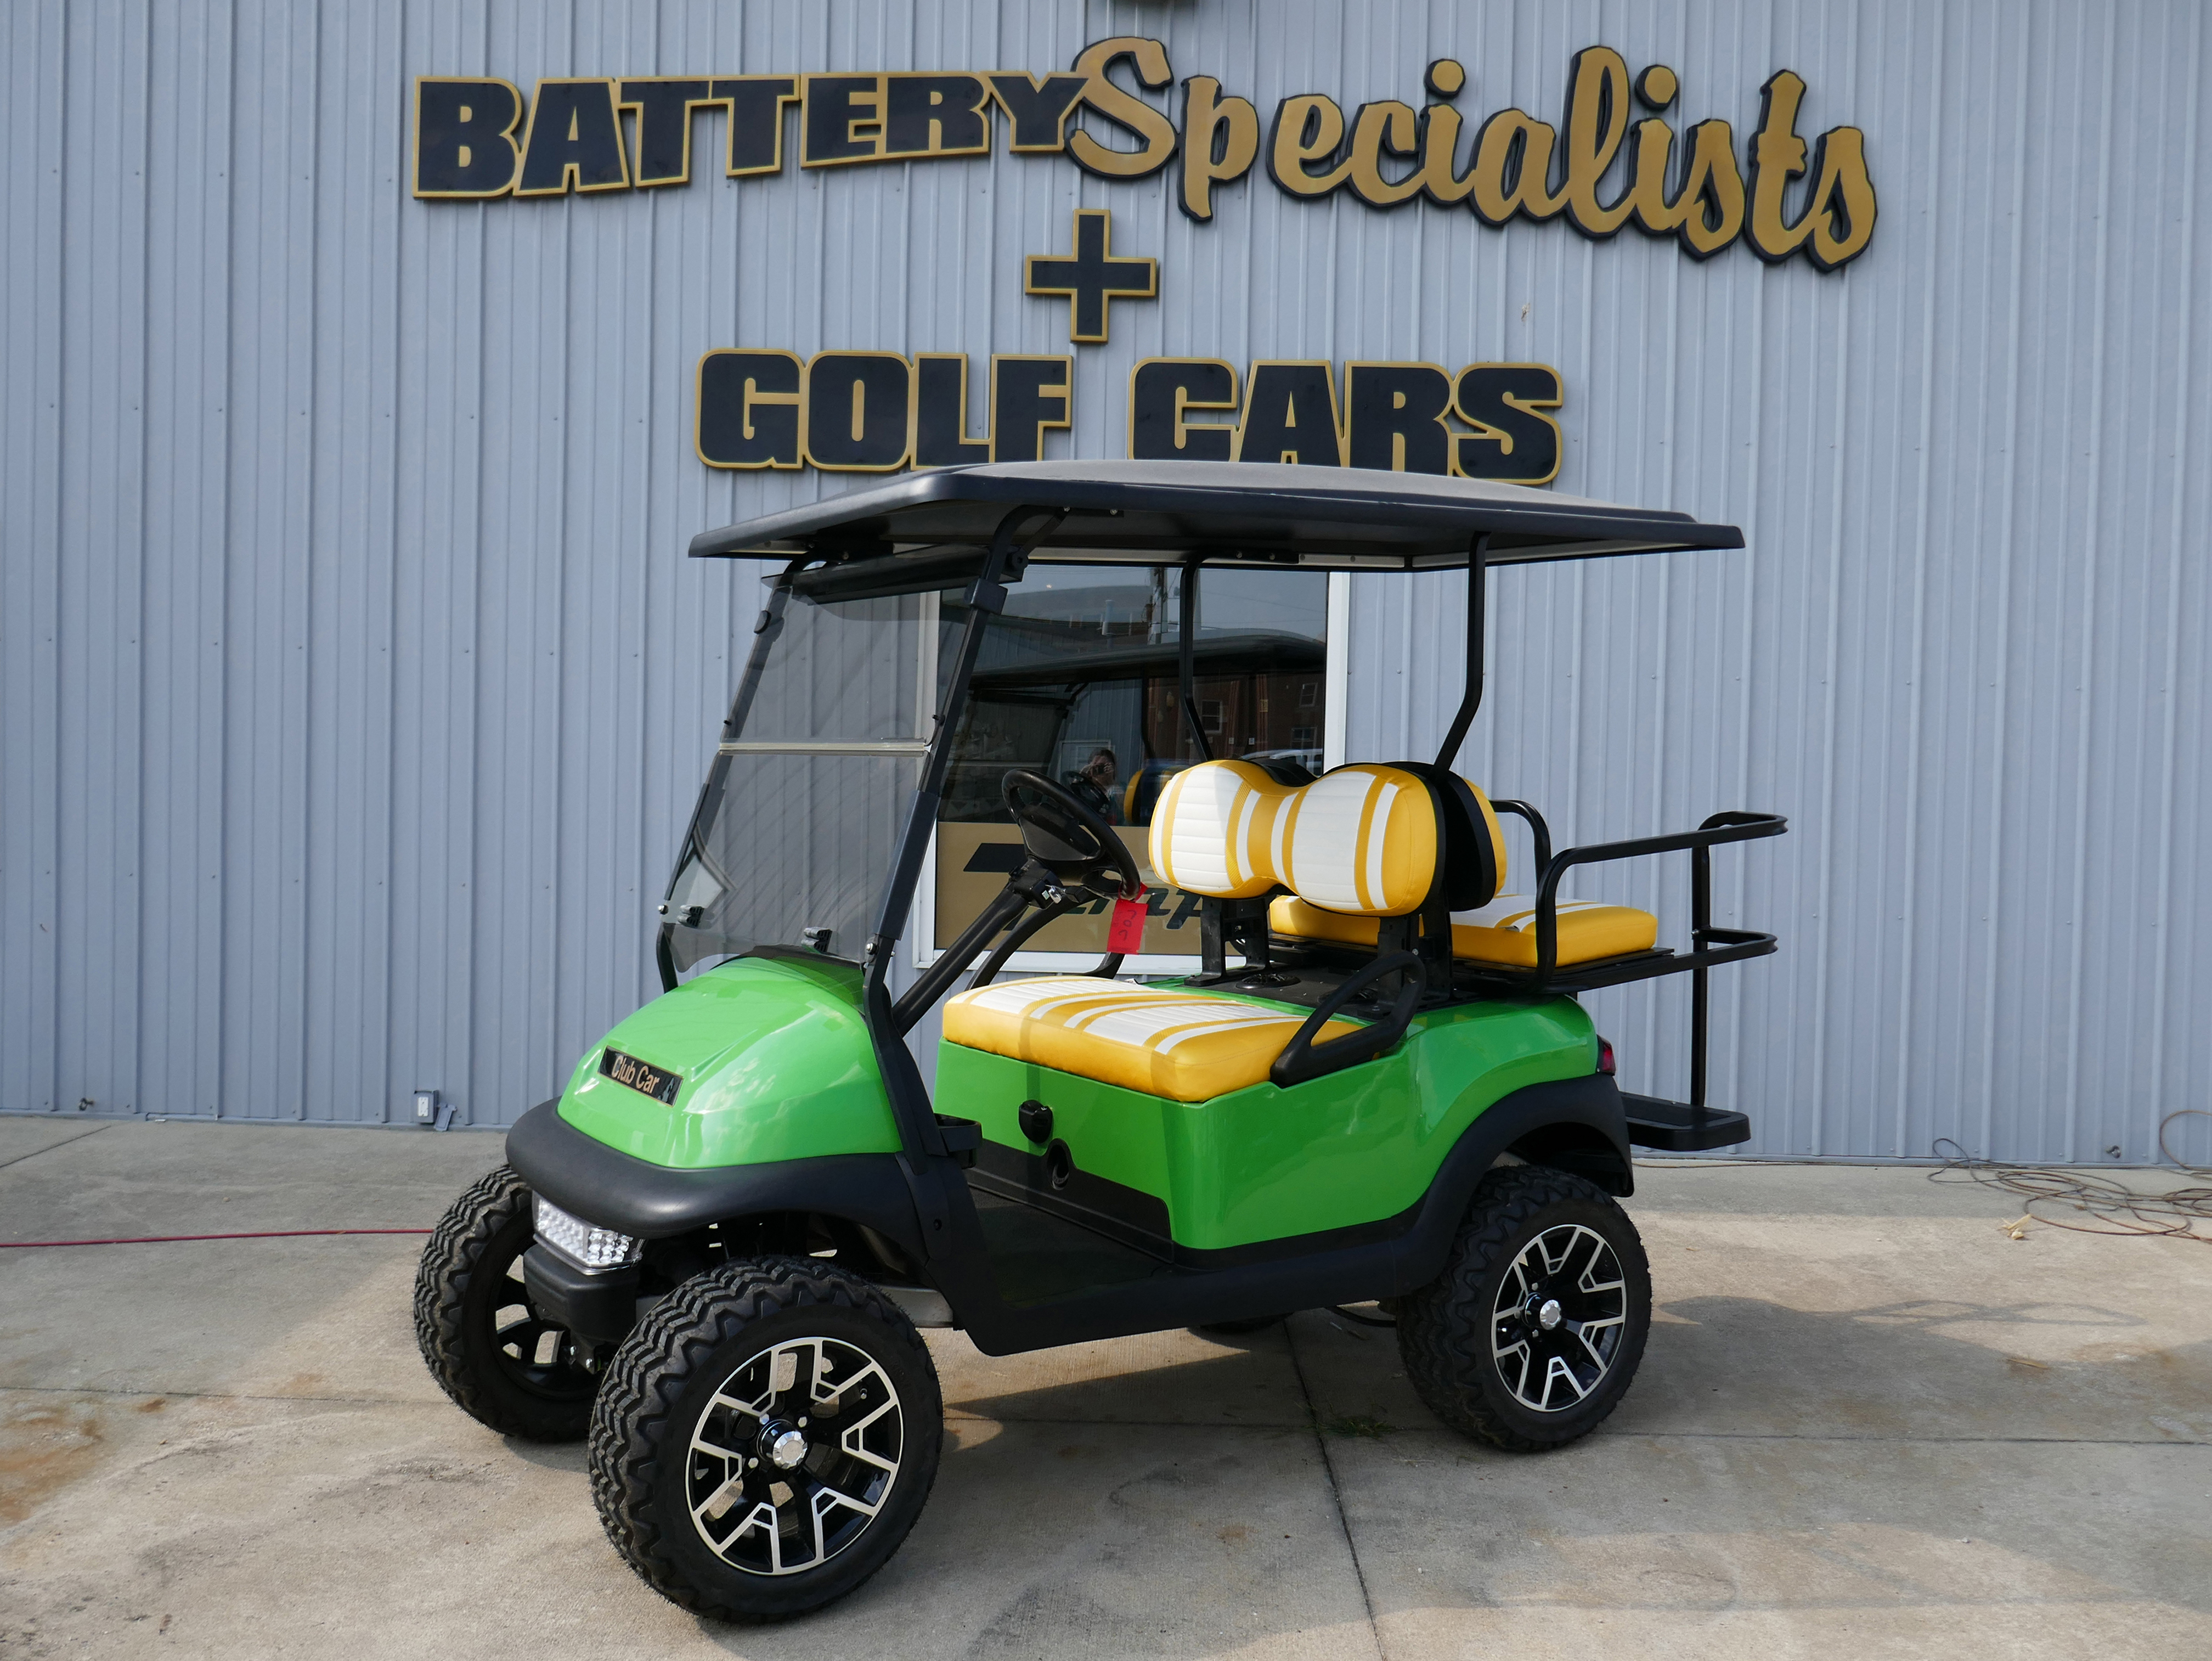 JD GREEN Electric Golf Cart 2010 Club Car Precedent for sale $6995